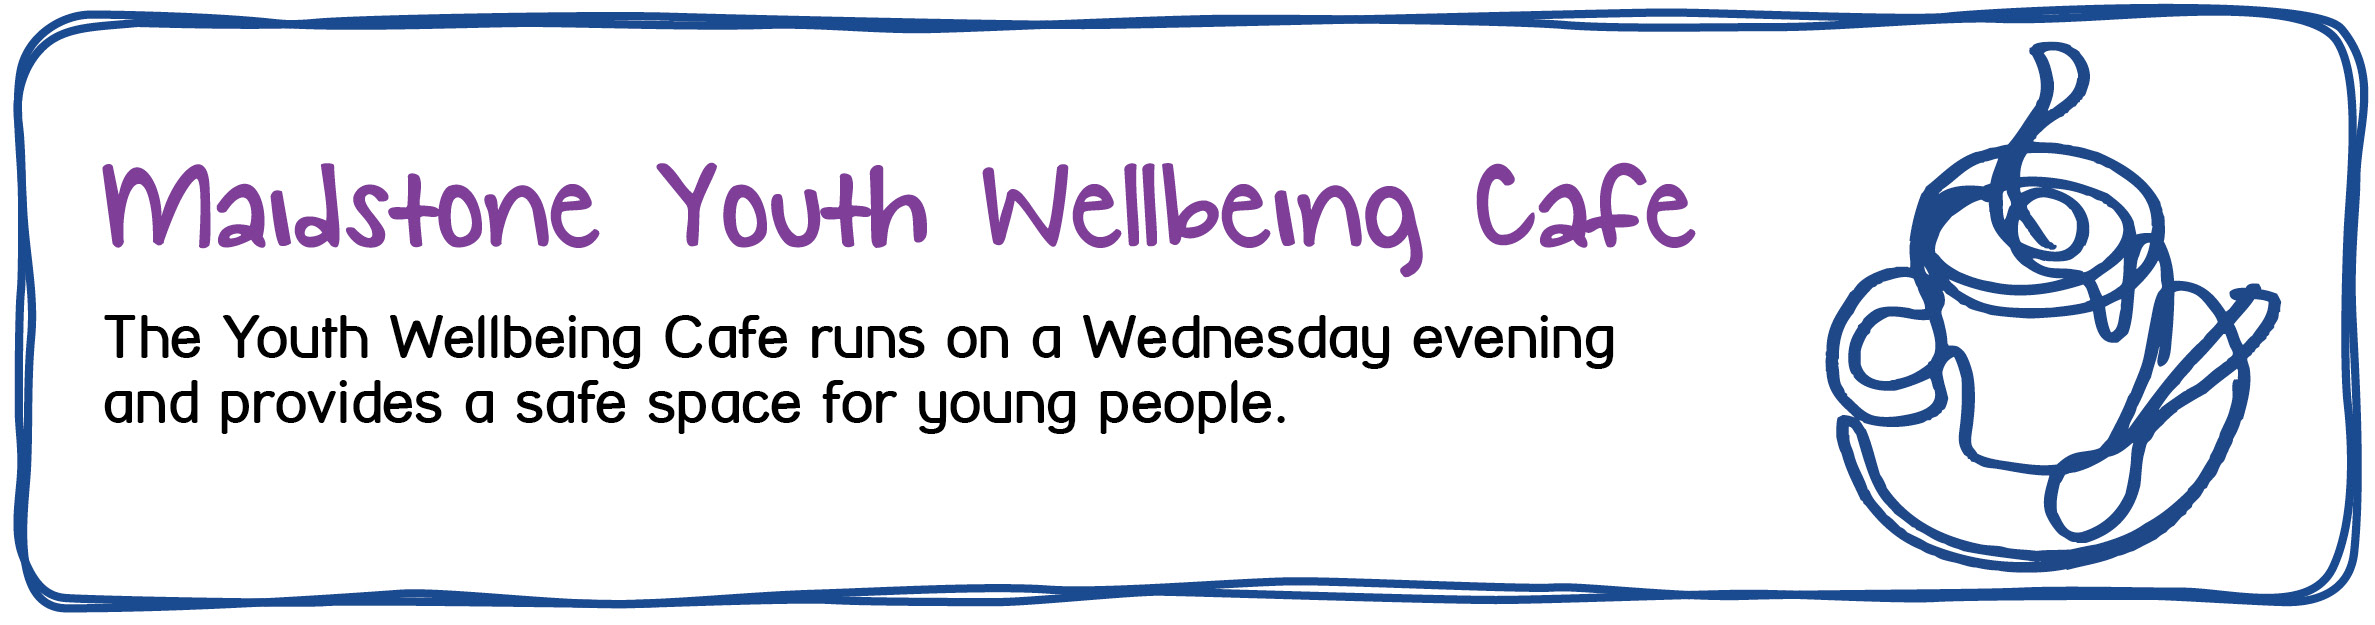 Youth Wellbeing Cafe In Maidstone - The Youth Wellbeing Cafe runs on a Wednesday evening and provides a safe space for young people.